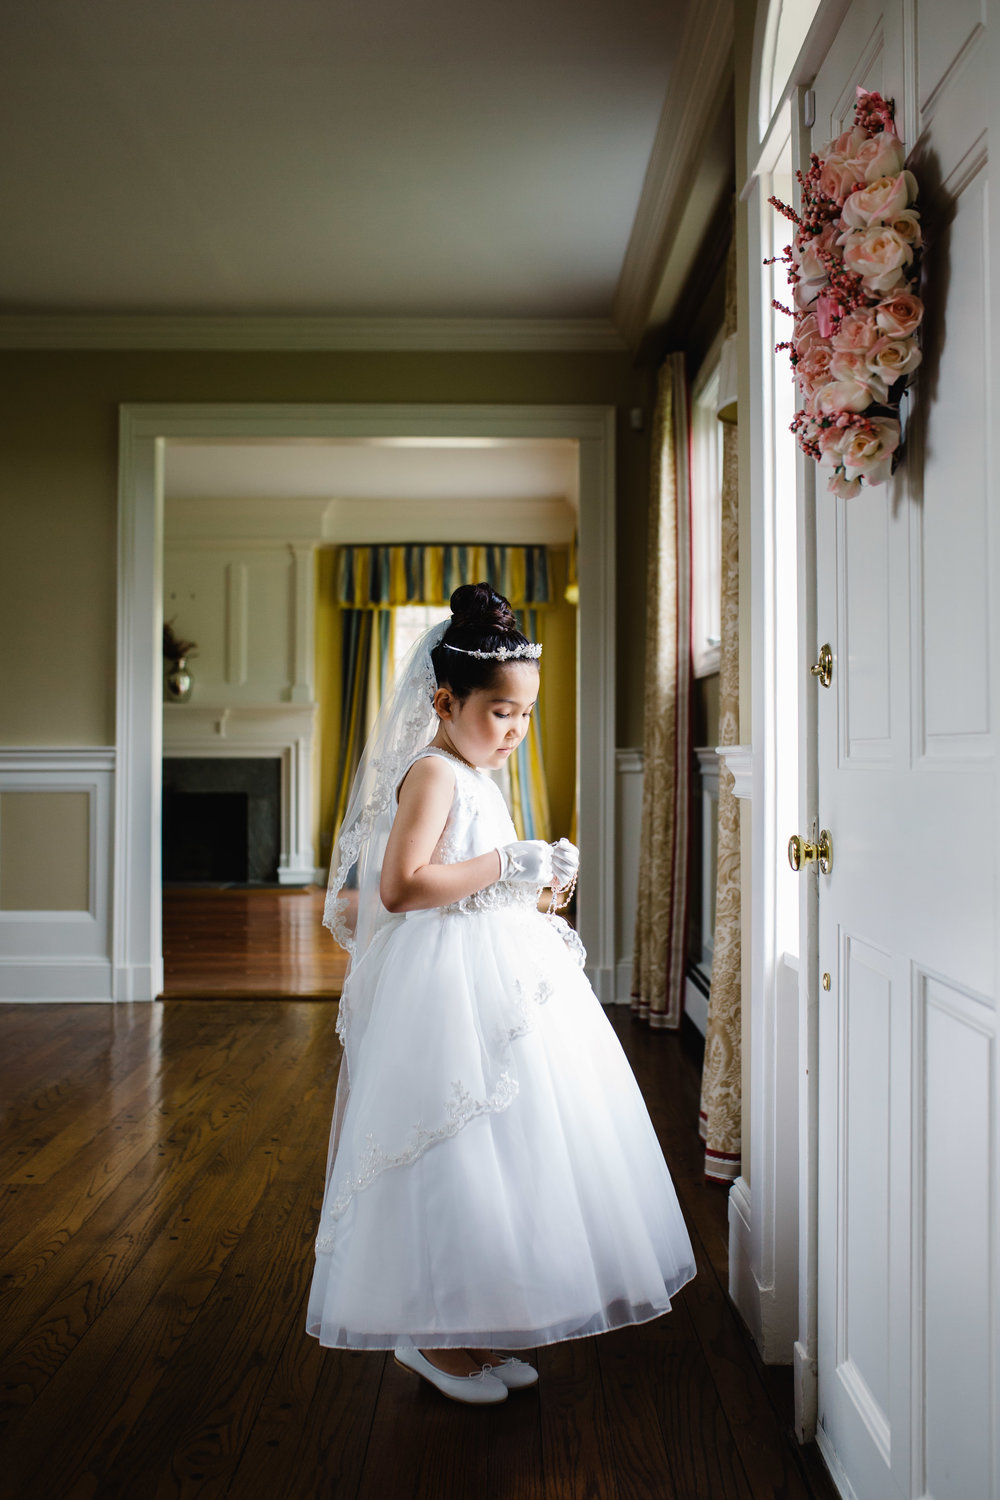 first communion portrait session at home | Jennifer Tippett Photography